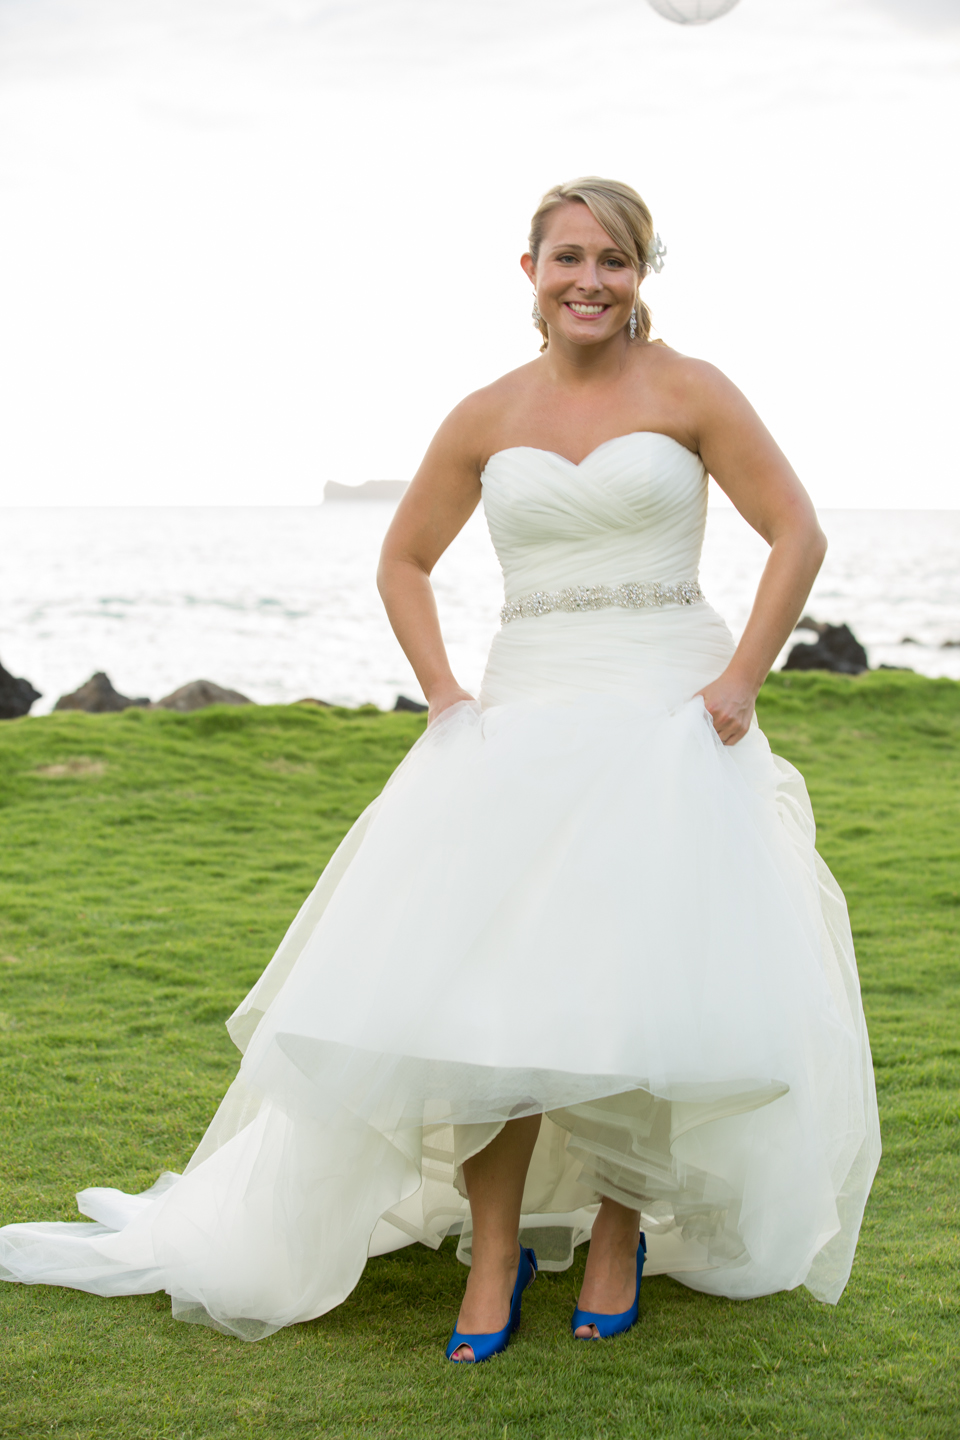 063_maui-wedding-photographer-kaua-photography